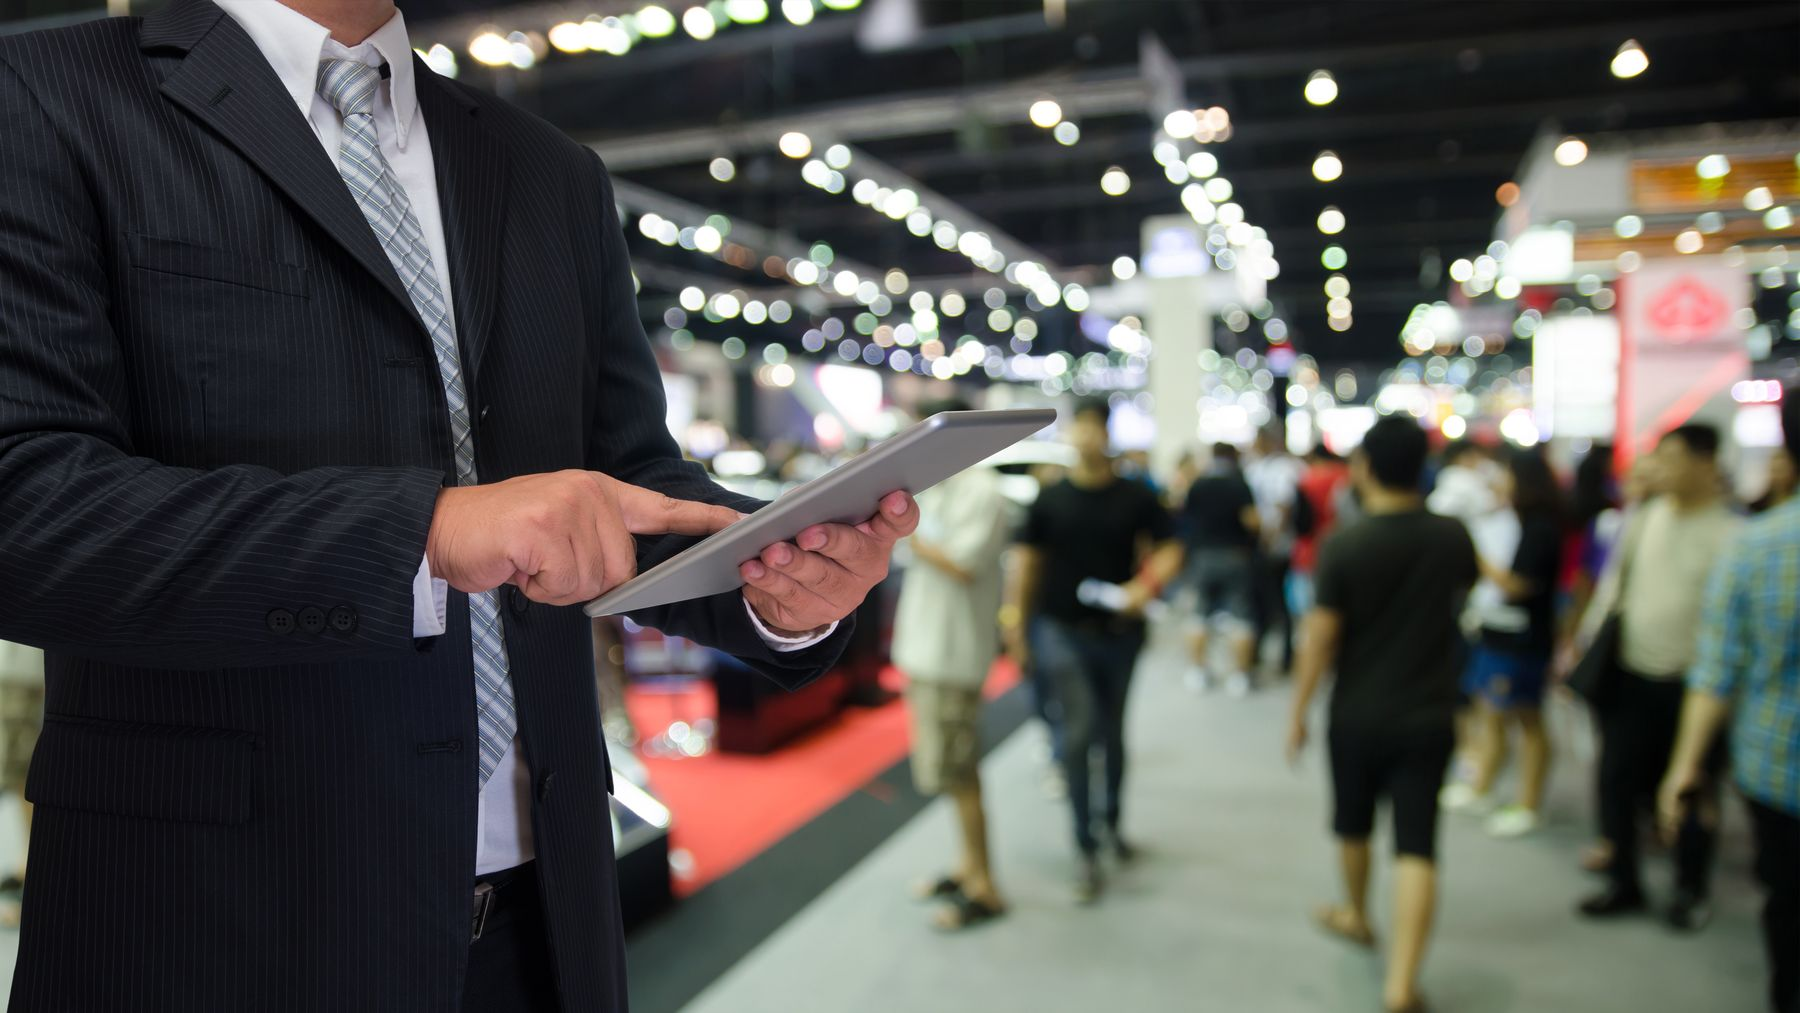 Making the move to online event registrations